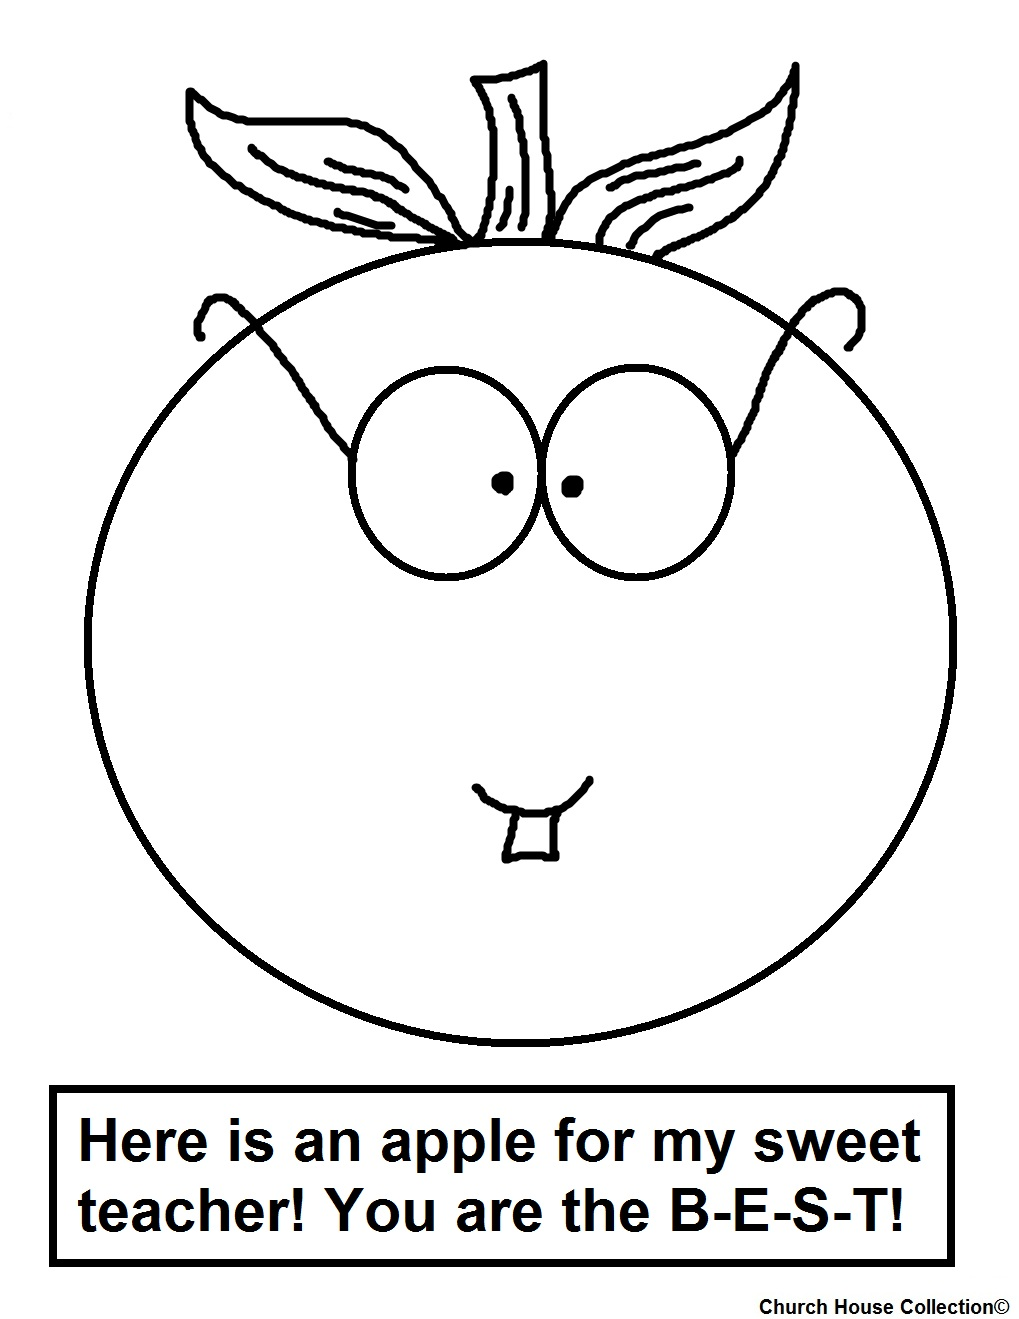 Teacher Apple Coloring Pages : Church house collection january